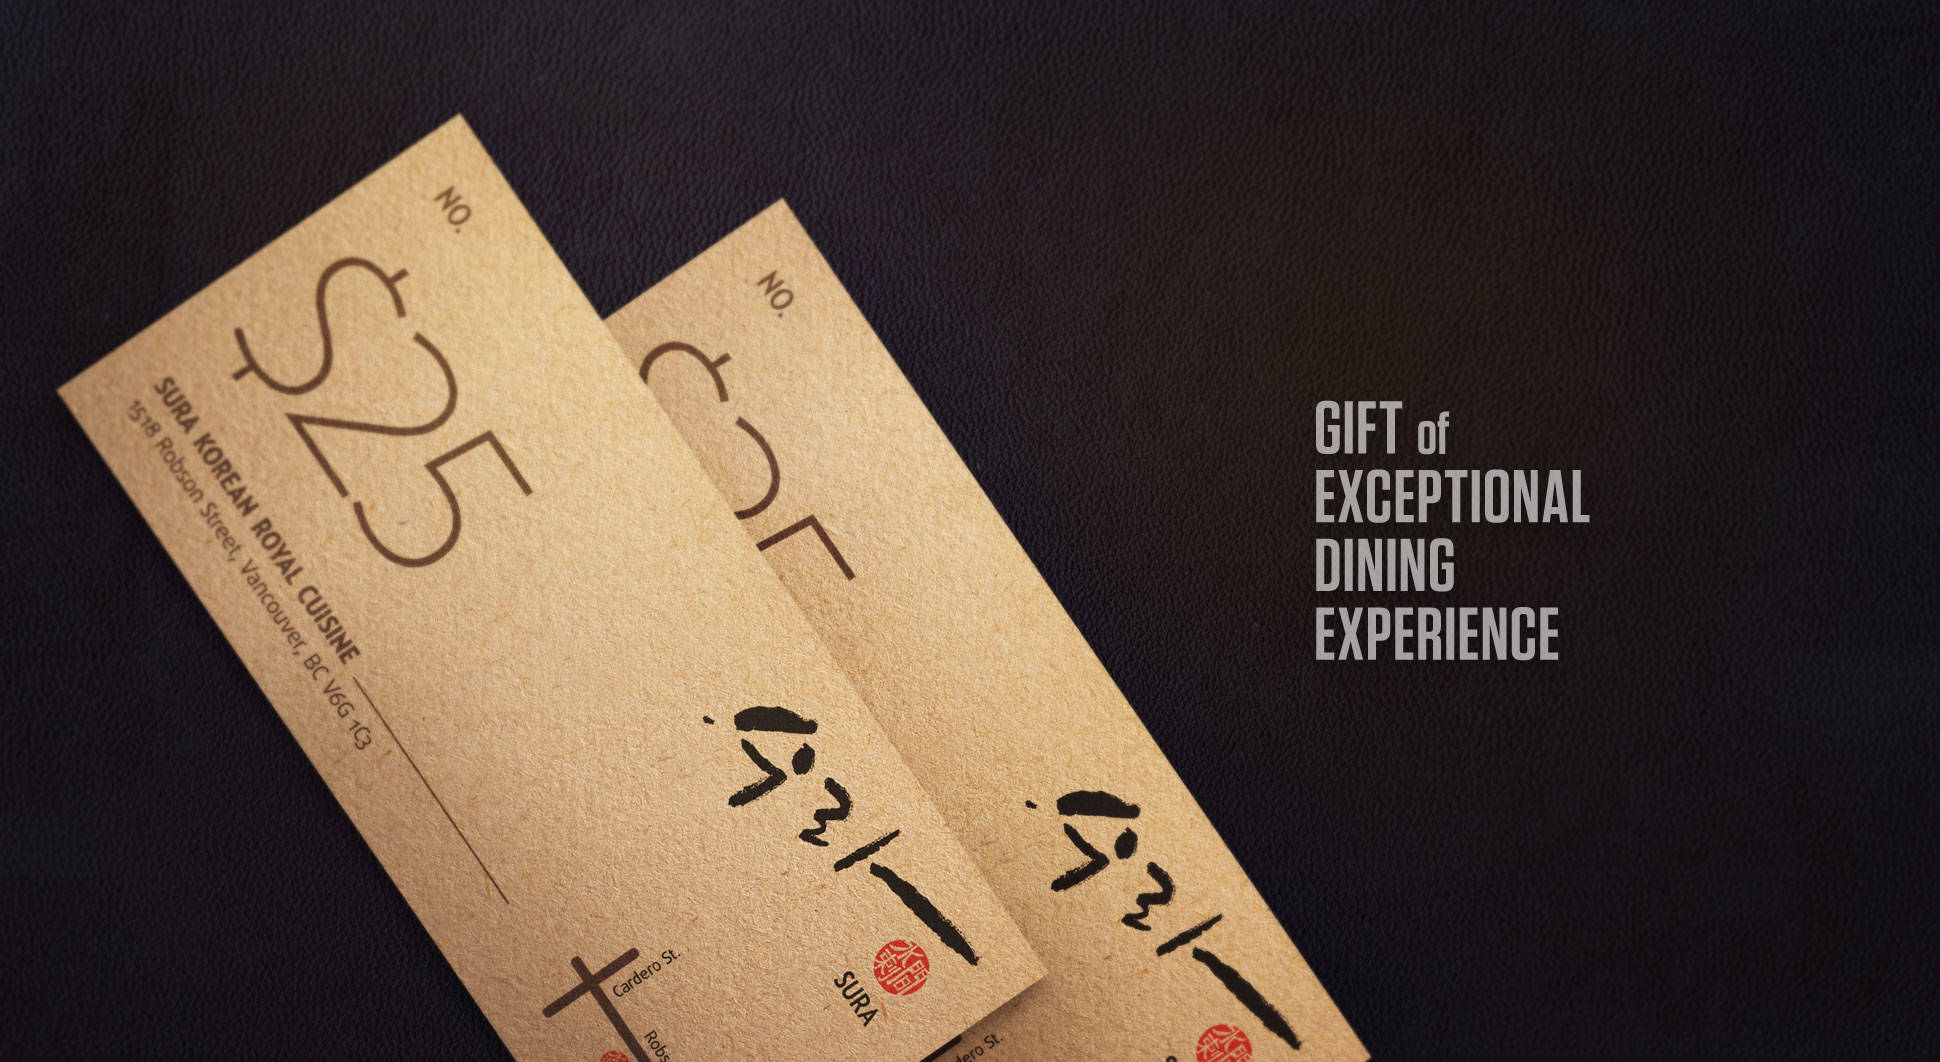 Gift of exceptional dining experience